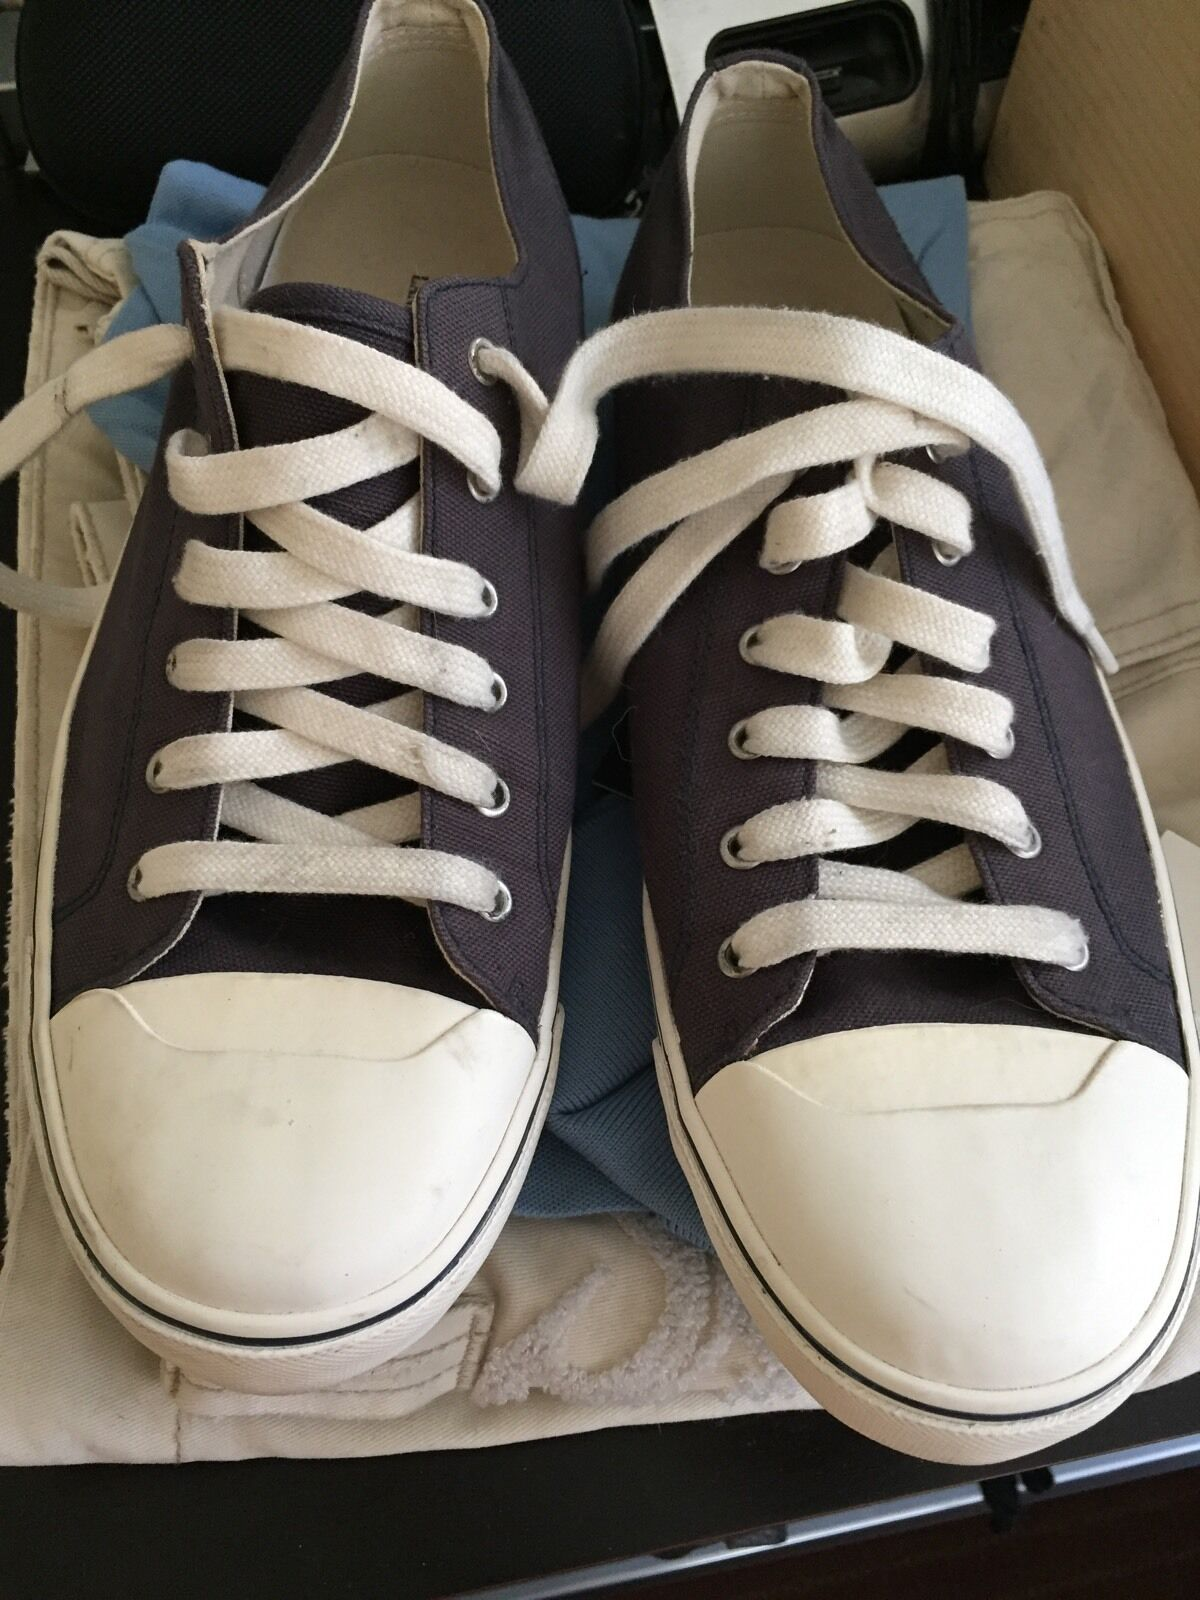 Land's End Canvas Sneakers - Navy Size 11